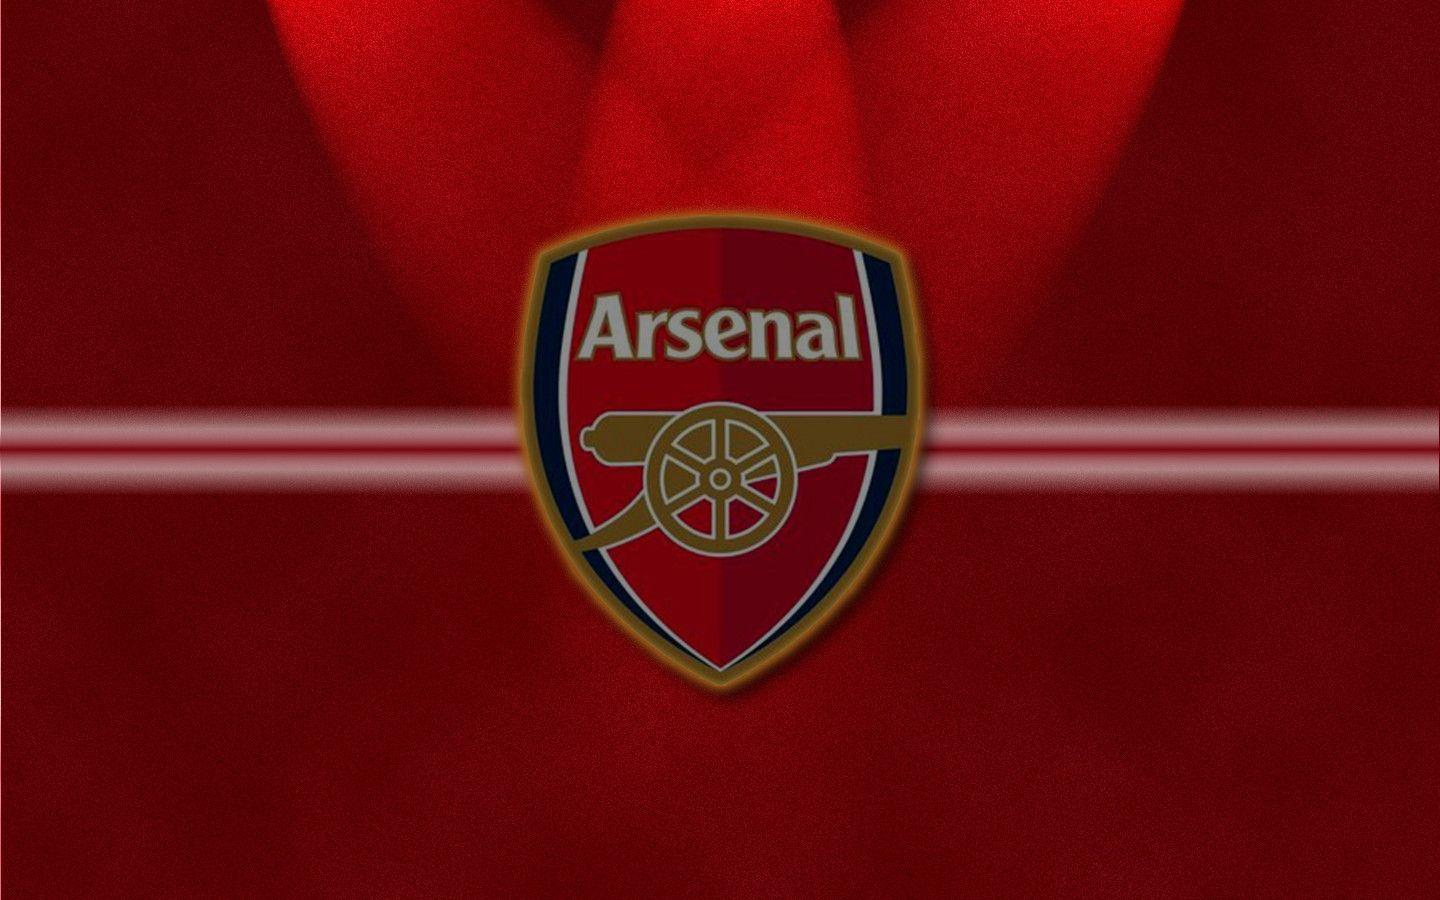 Arsenal FC Wallpapers 1440x900